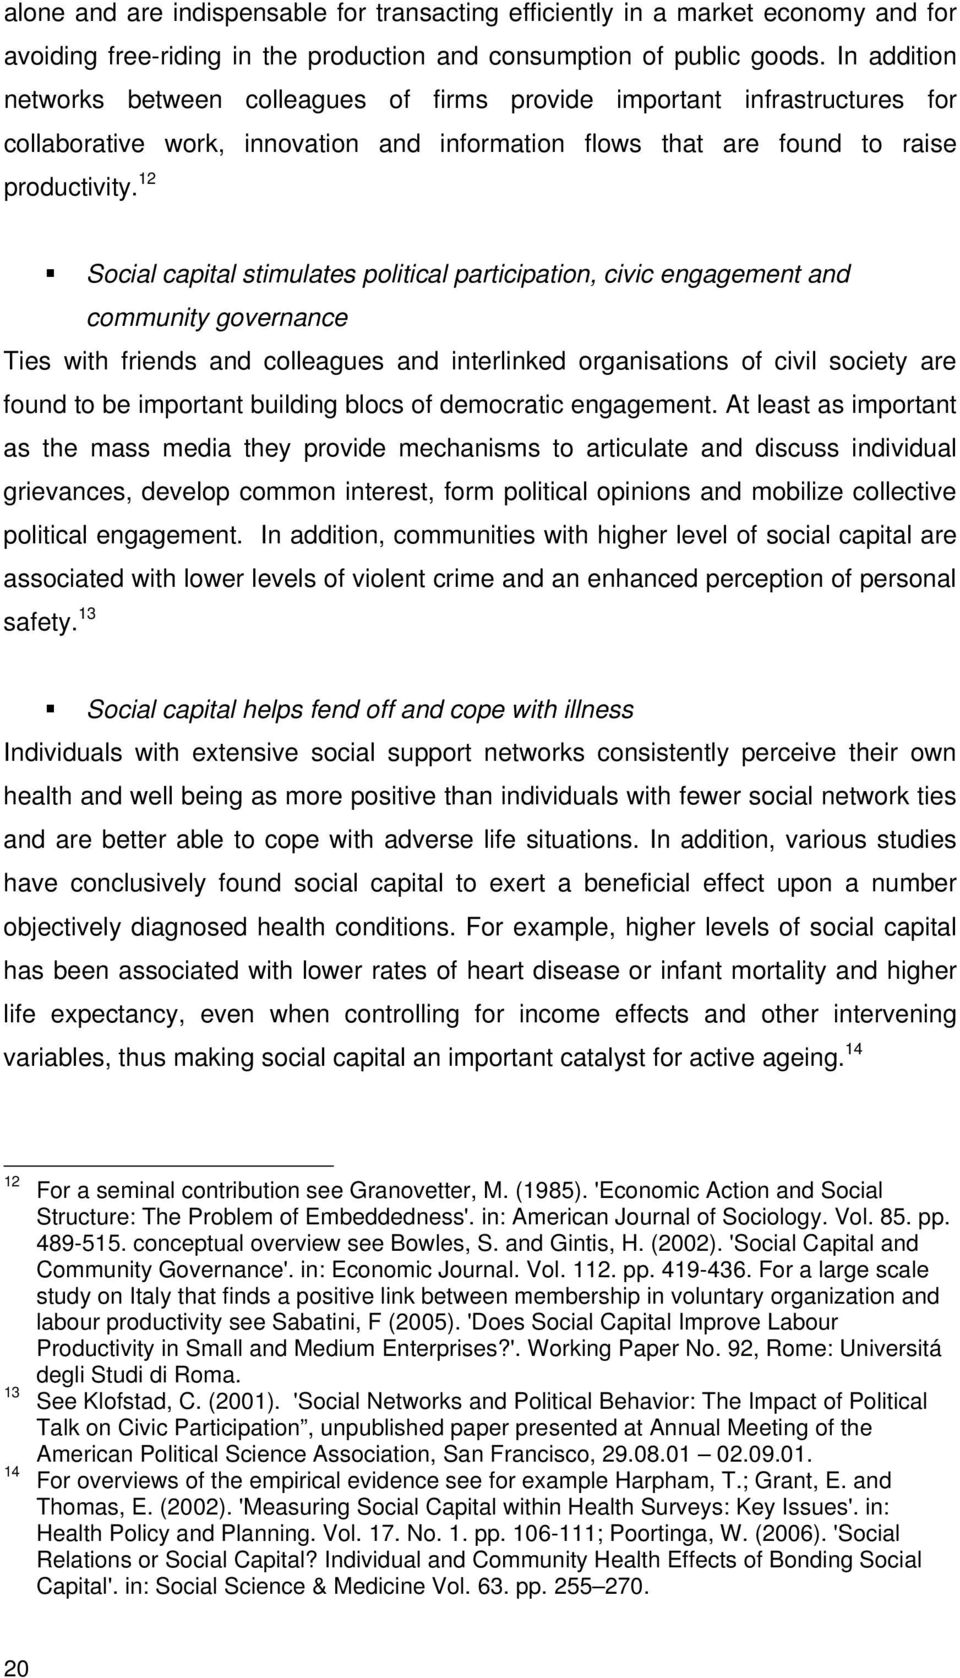 12 Social capital stimulates political participation, civic engagement and community governance Ties with friends and colleagues and interlinked organisations of civil society are found to be